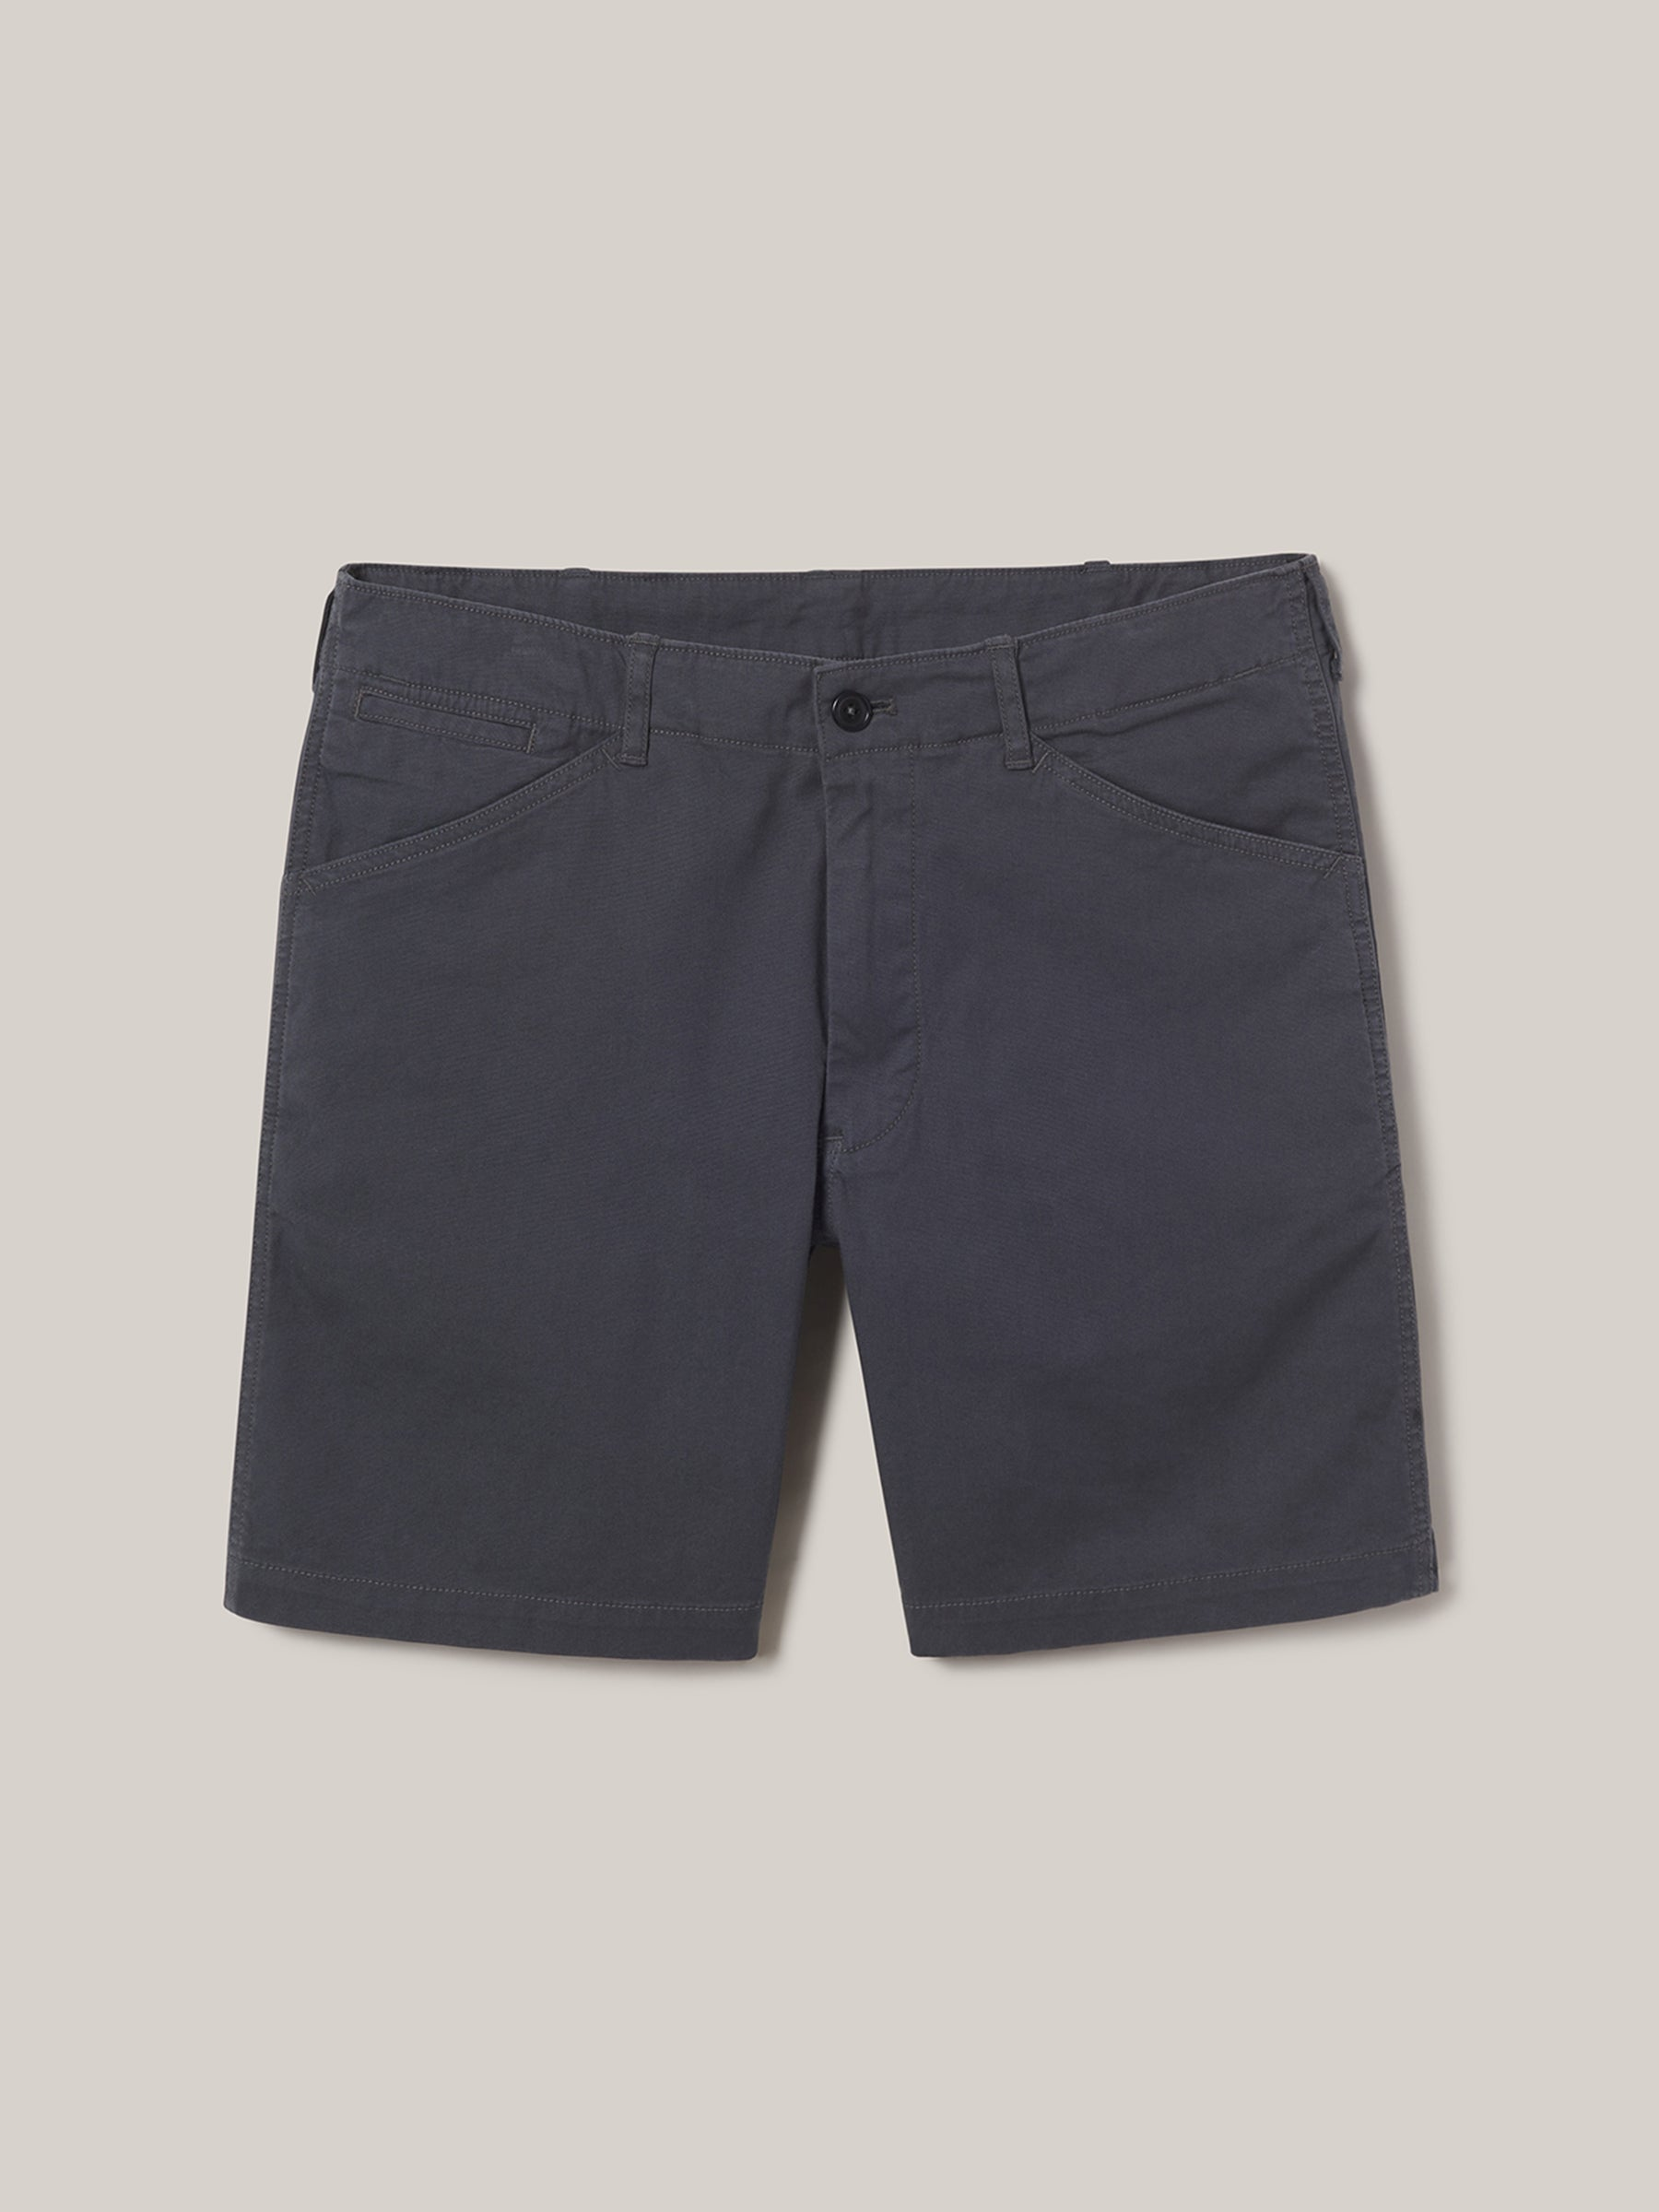 Anchor Mojave Wash Vintage Canvas 8 Inch Walk Short